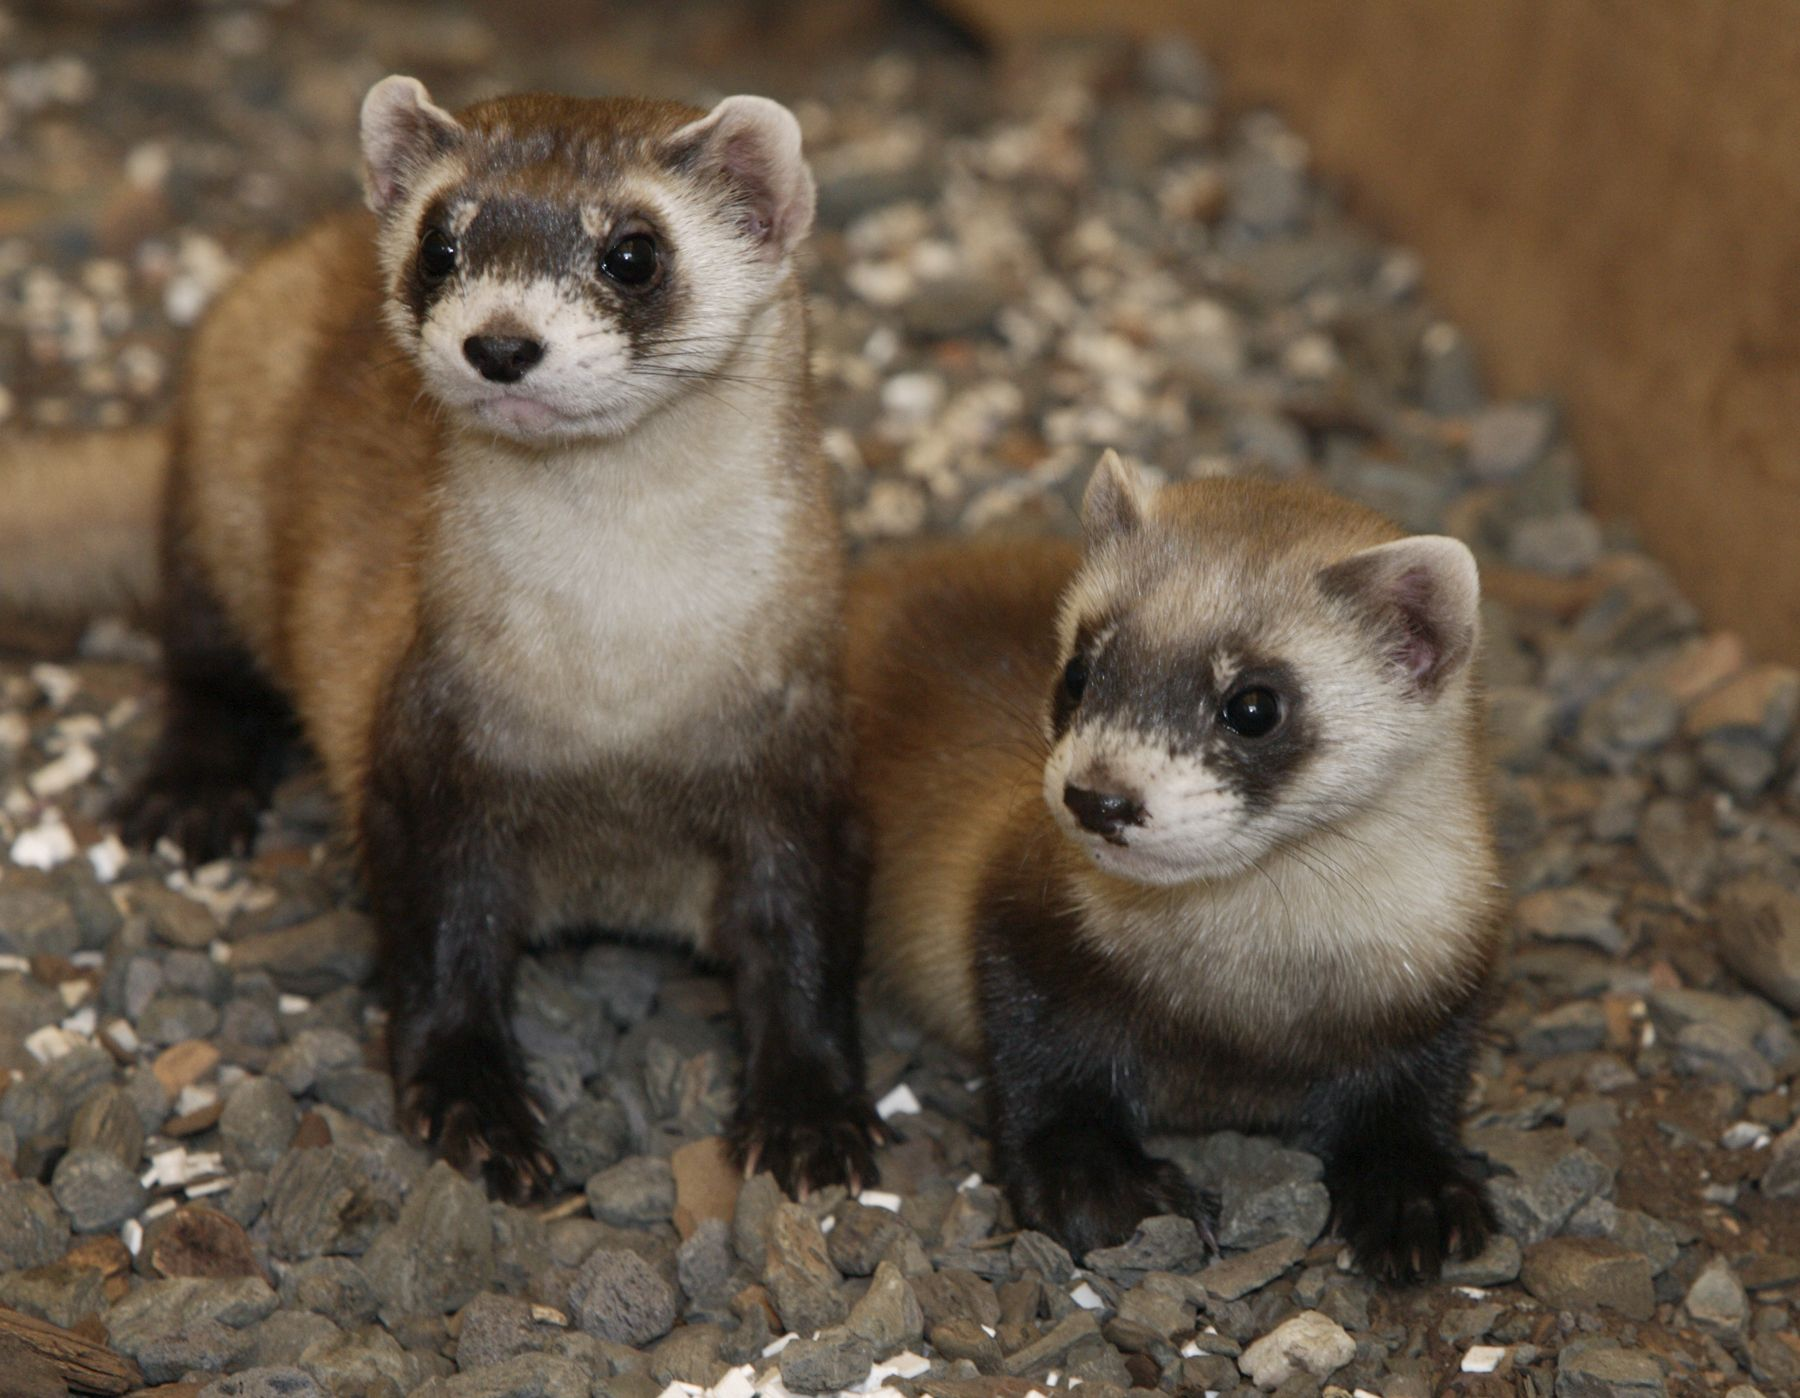 Pin By Frito Bandito On Endangered Endangered Animals Cute Ferrets Cute Endangered Animals